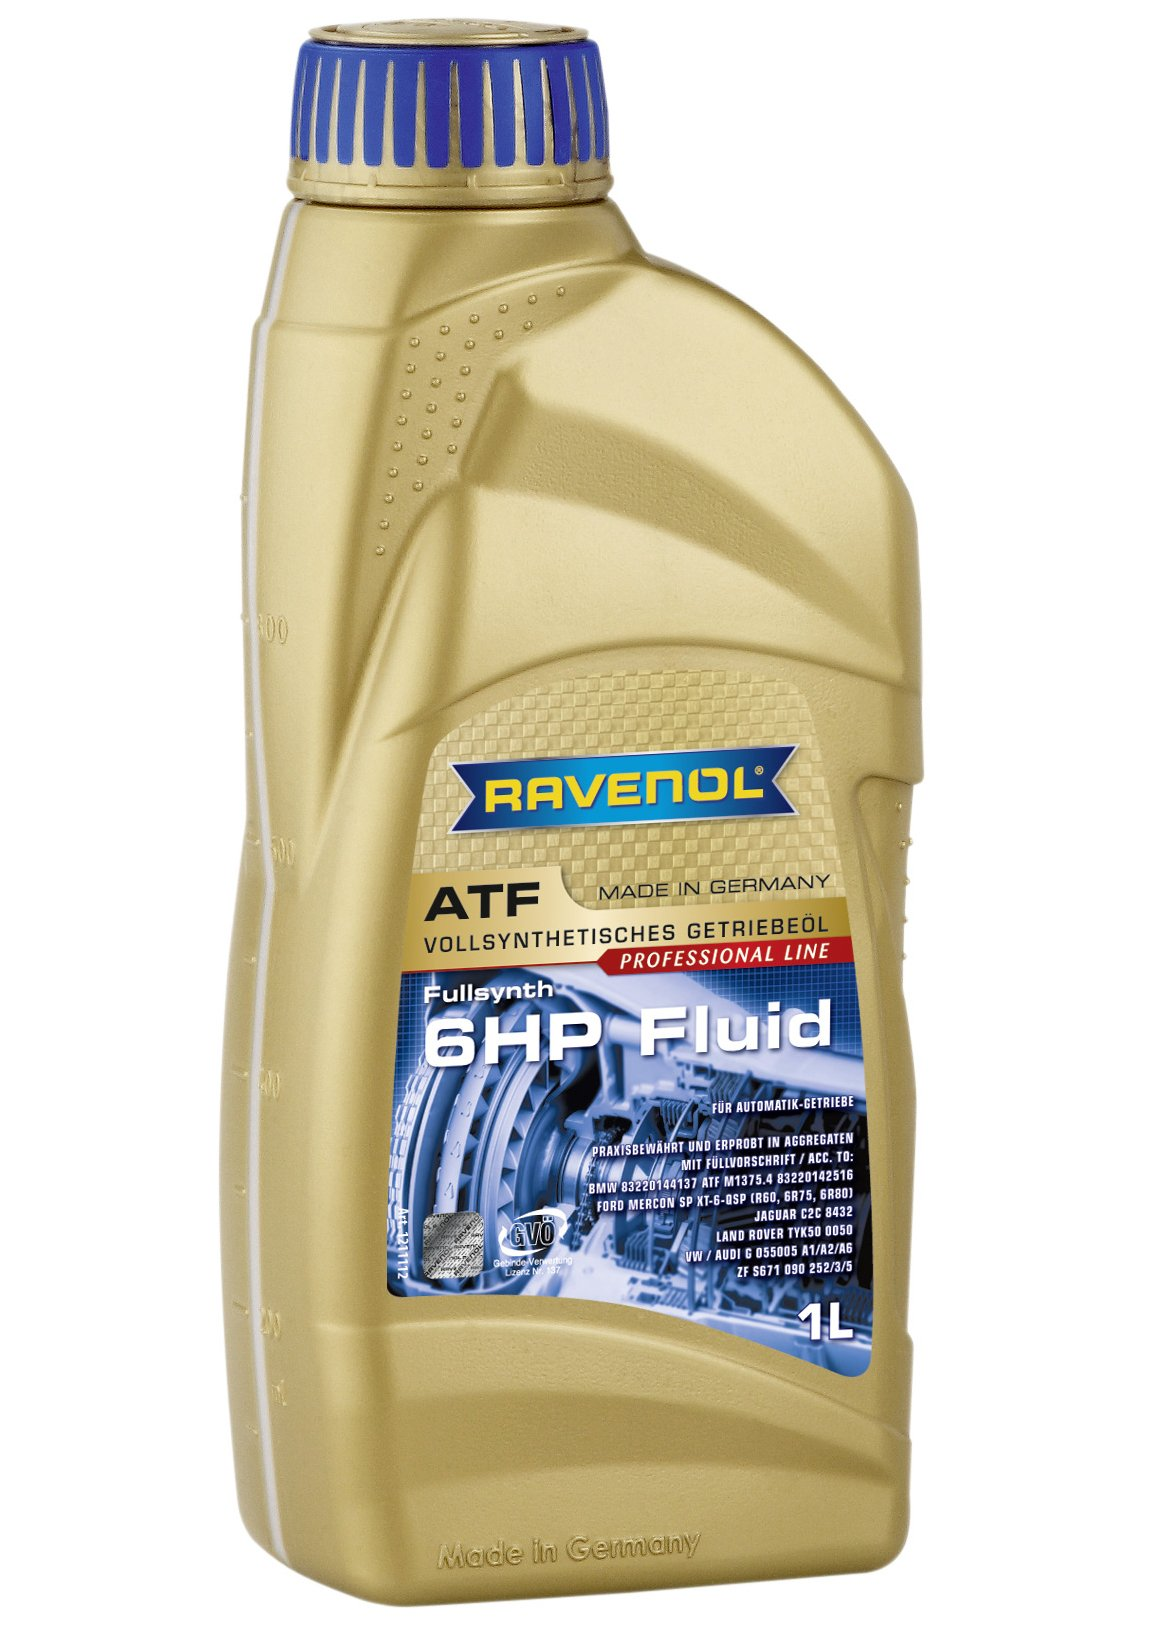 RAVENOL J1D2110 ATF (Automatic Transmission Fluid) - 6HP Fluid for ZF 6HP Transmissions (1 Liter) by RAVENOL